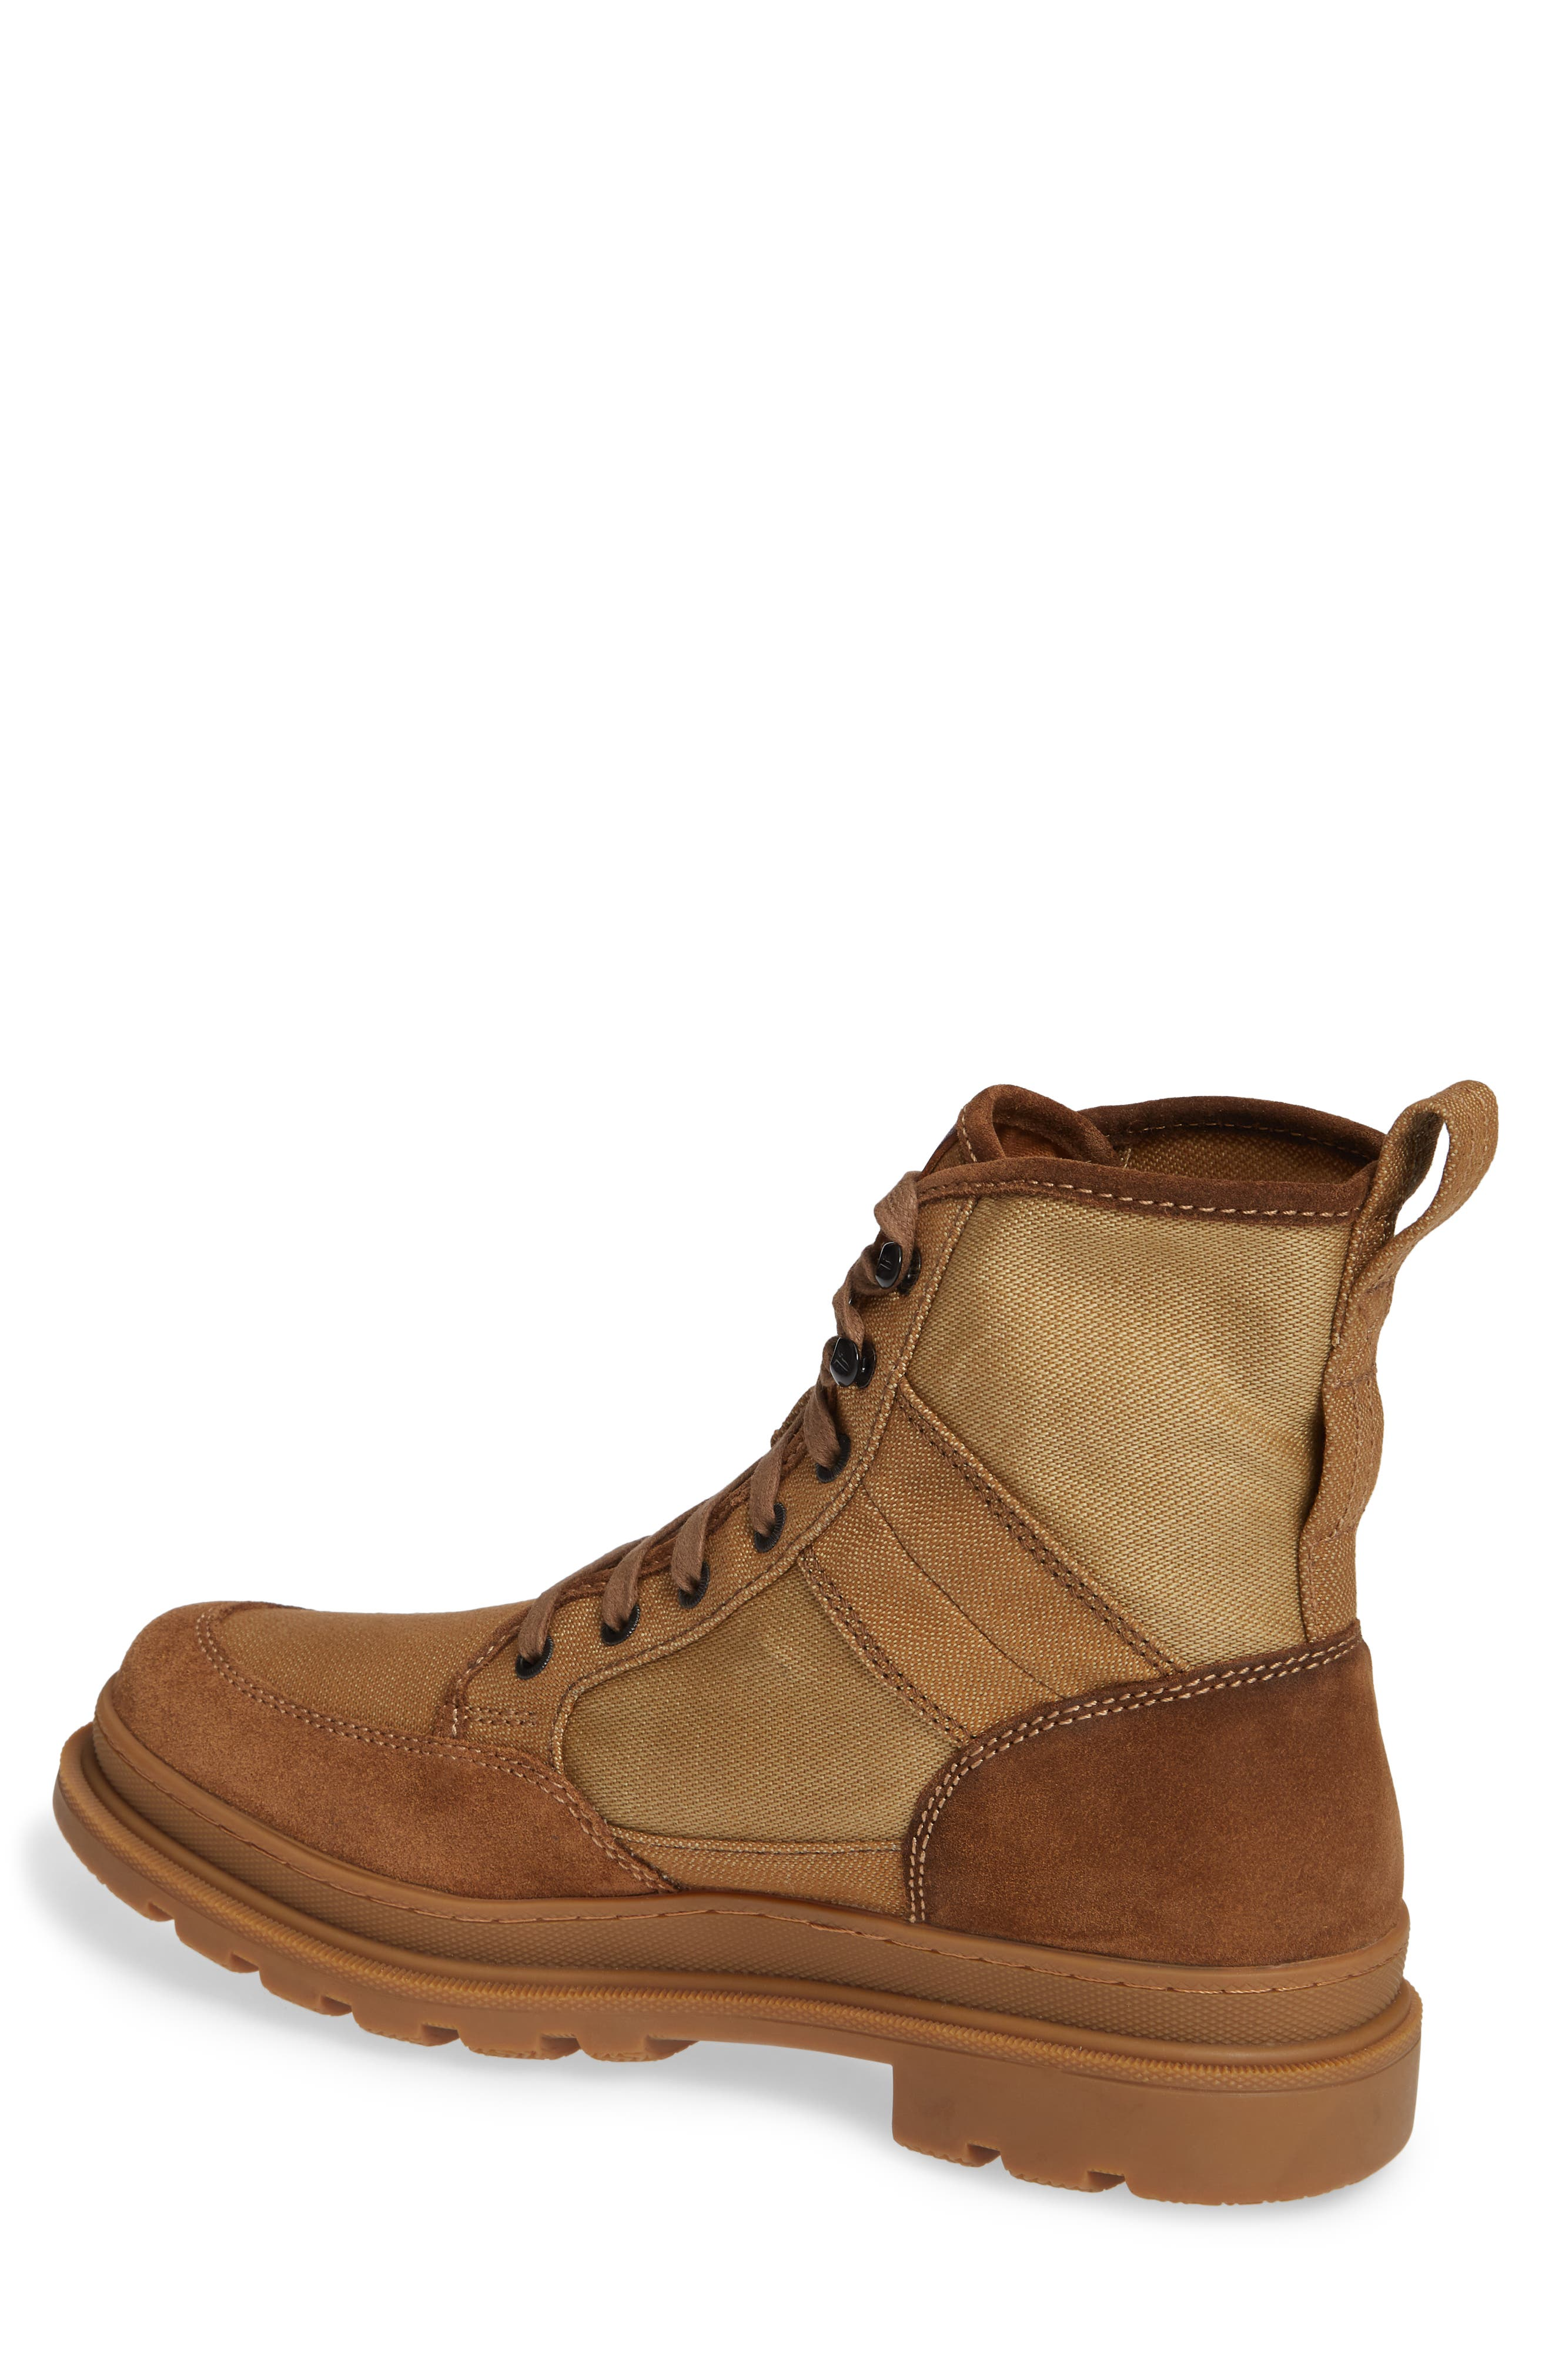 Scout Boot,                             Alternate thumbnail 2, color,                             TAUPE